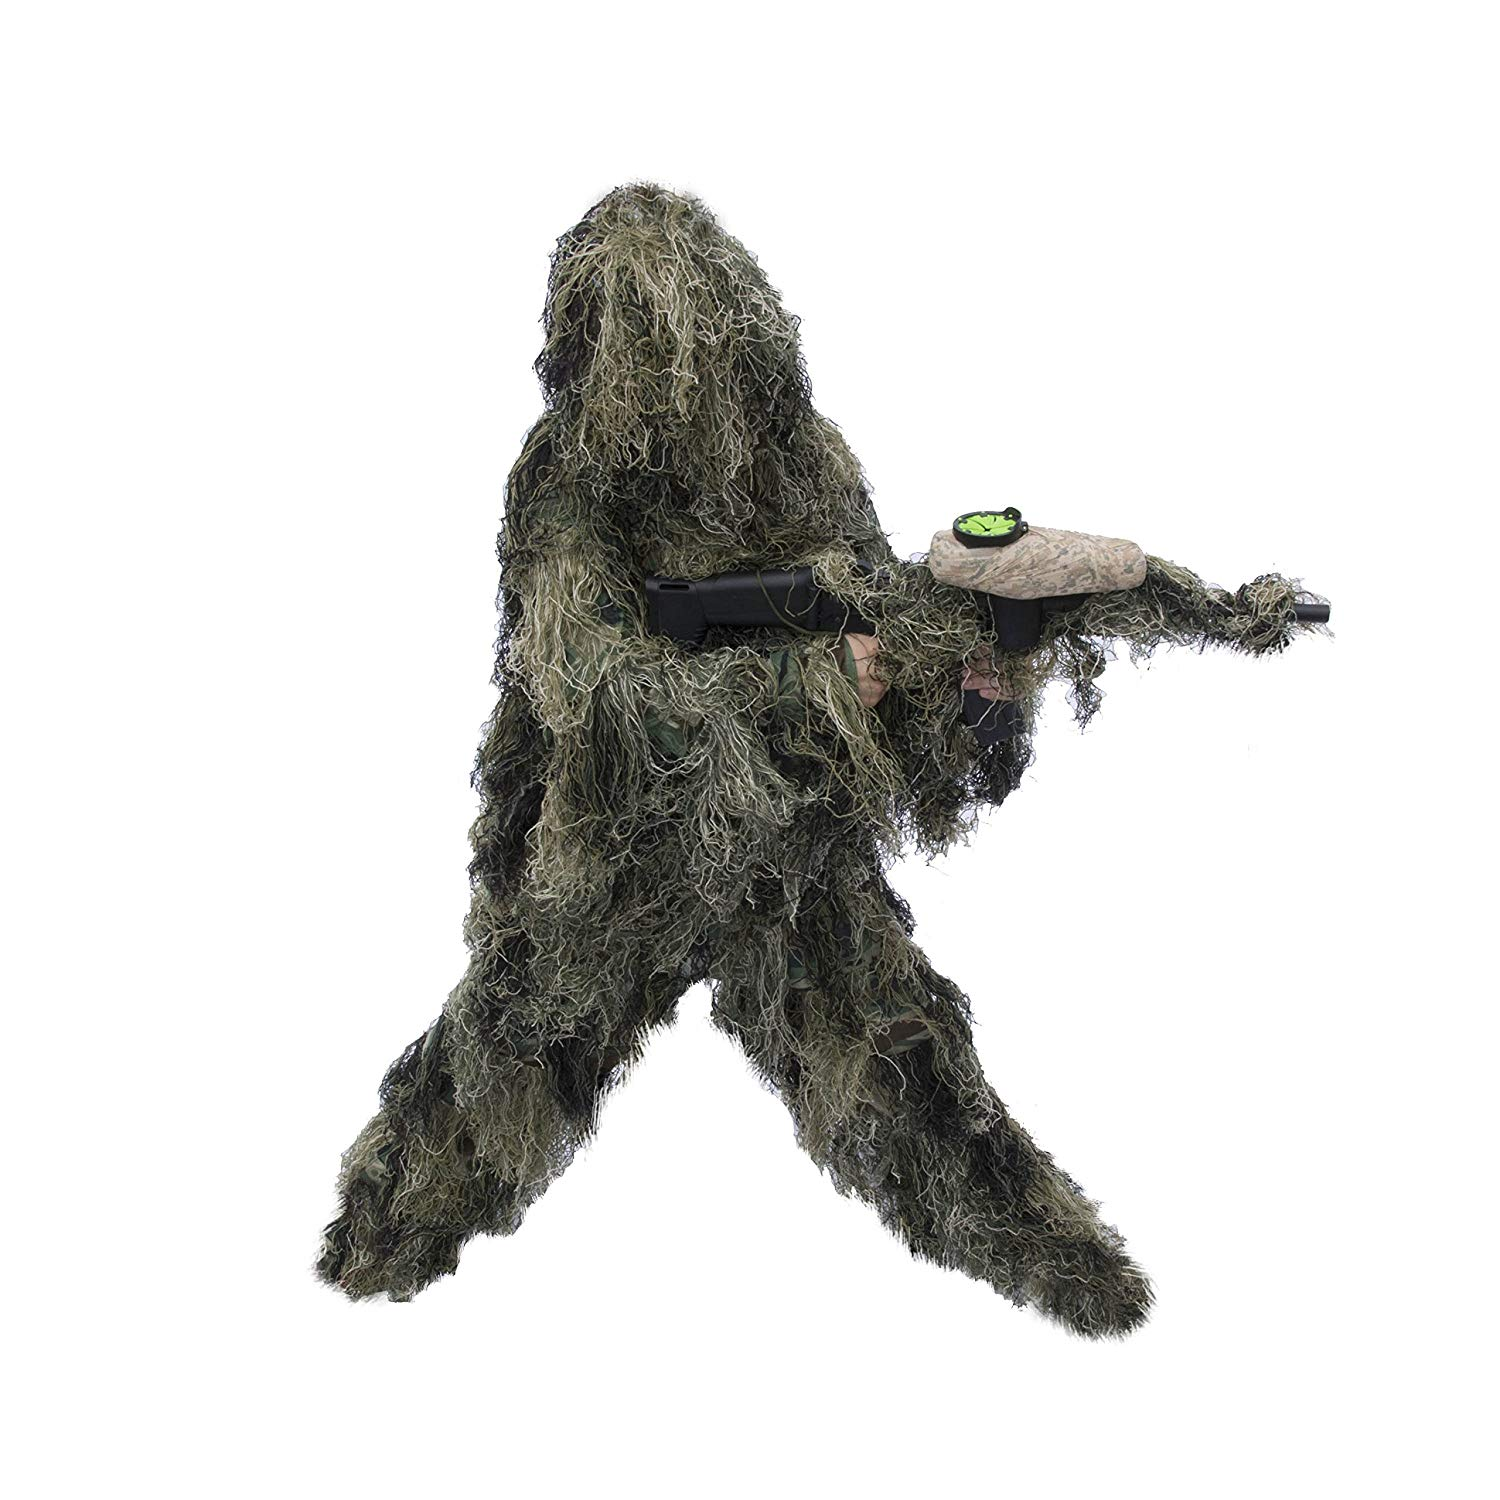 PBGS51 Tactical Paintball Hunting Woodland Ghillie 3 Piece Full Body Suit Green